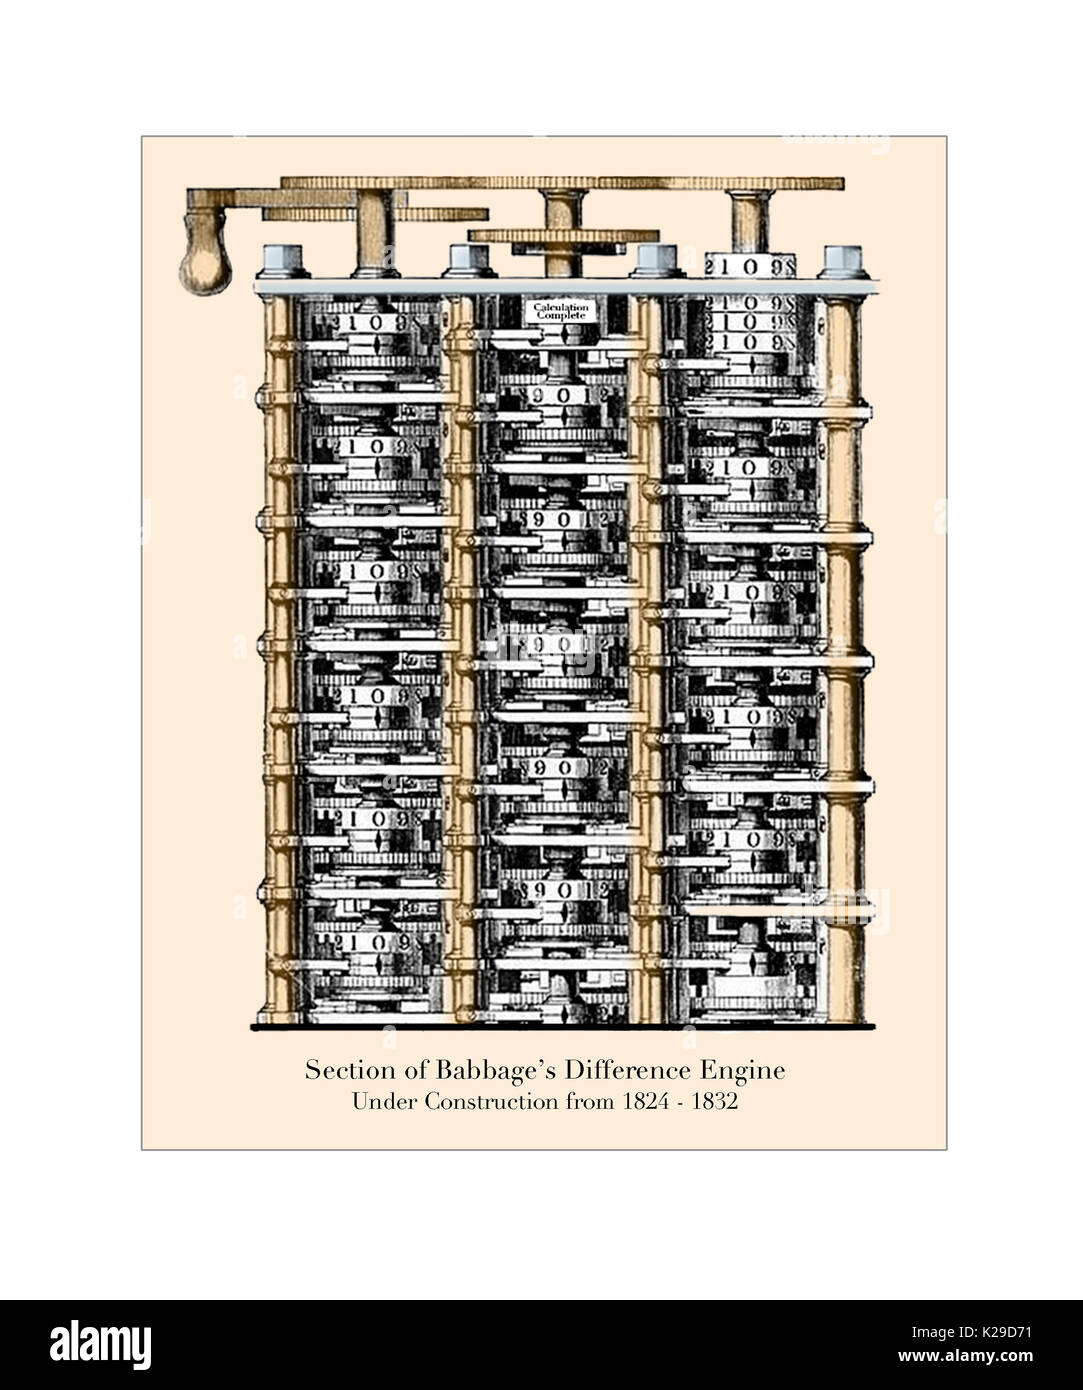 Difference Engine Photos Difference Engine Images – Difference Engine Diagram